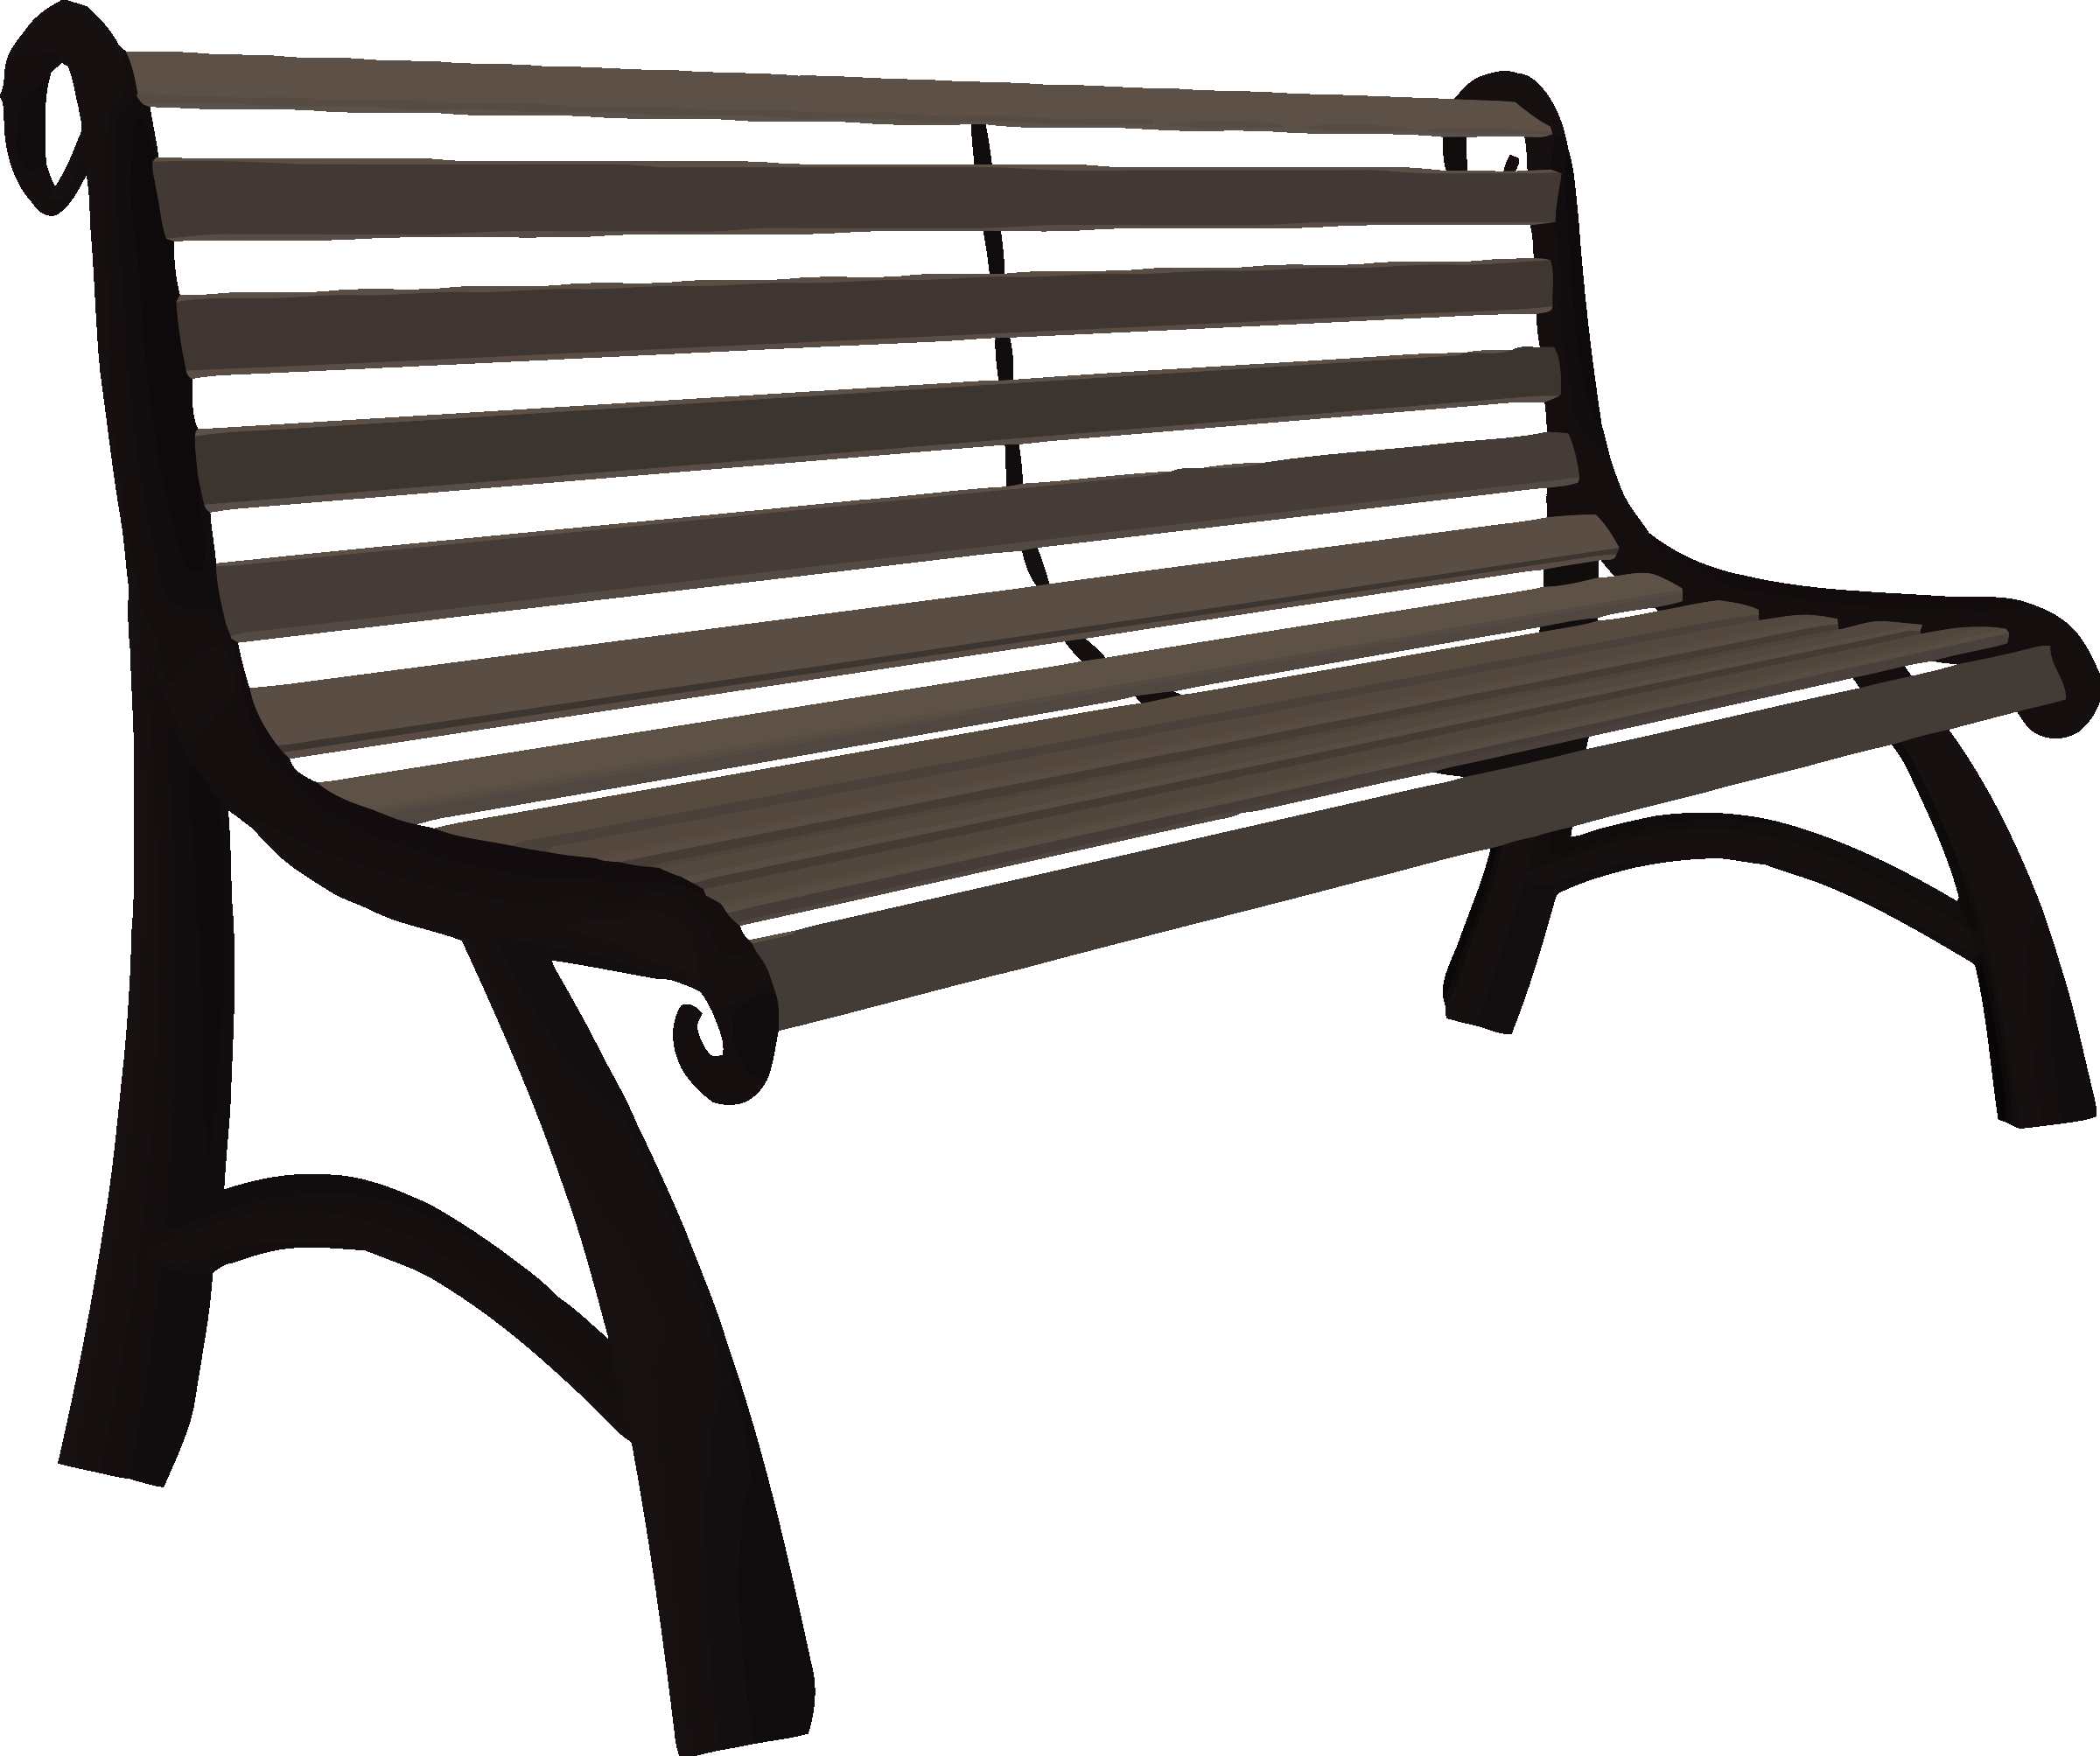 Park bench by Firkin